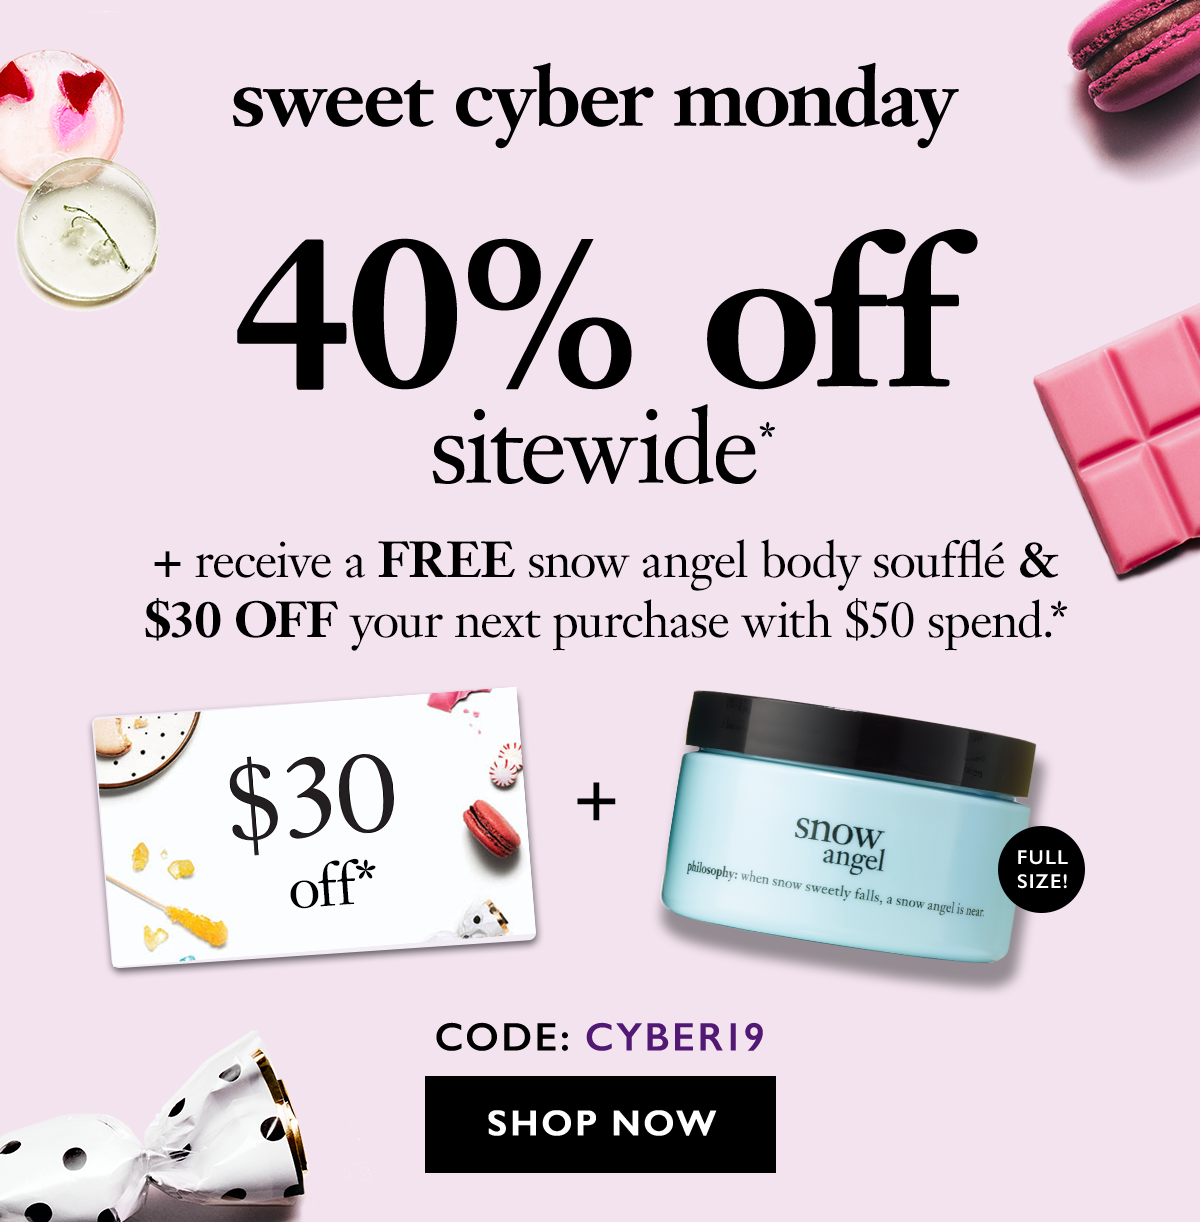 Suprise! sweet cyber monday savings continue 40% off site